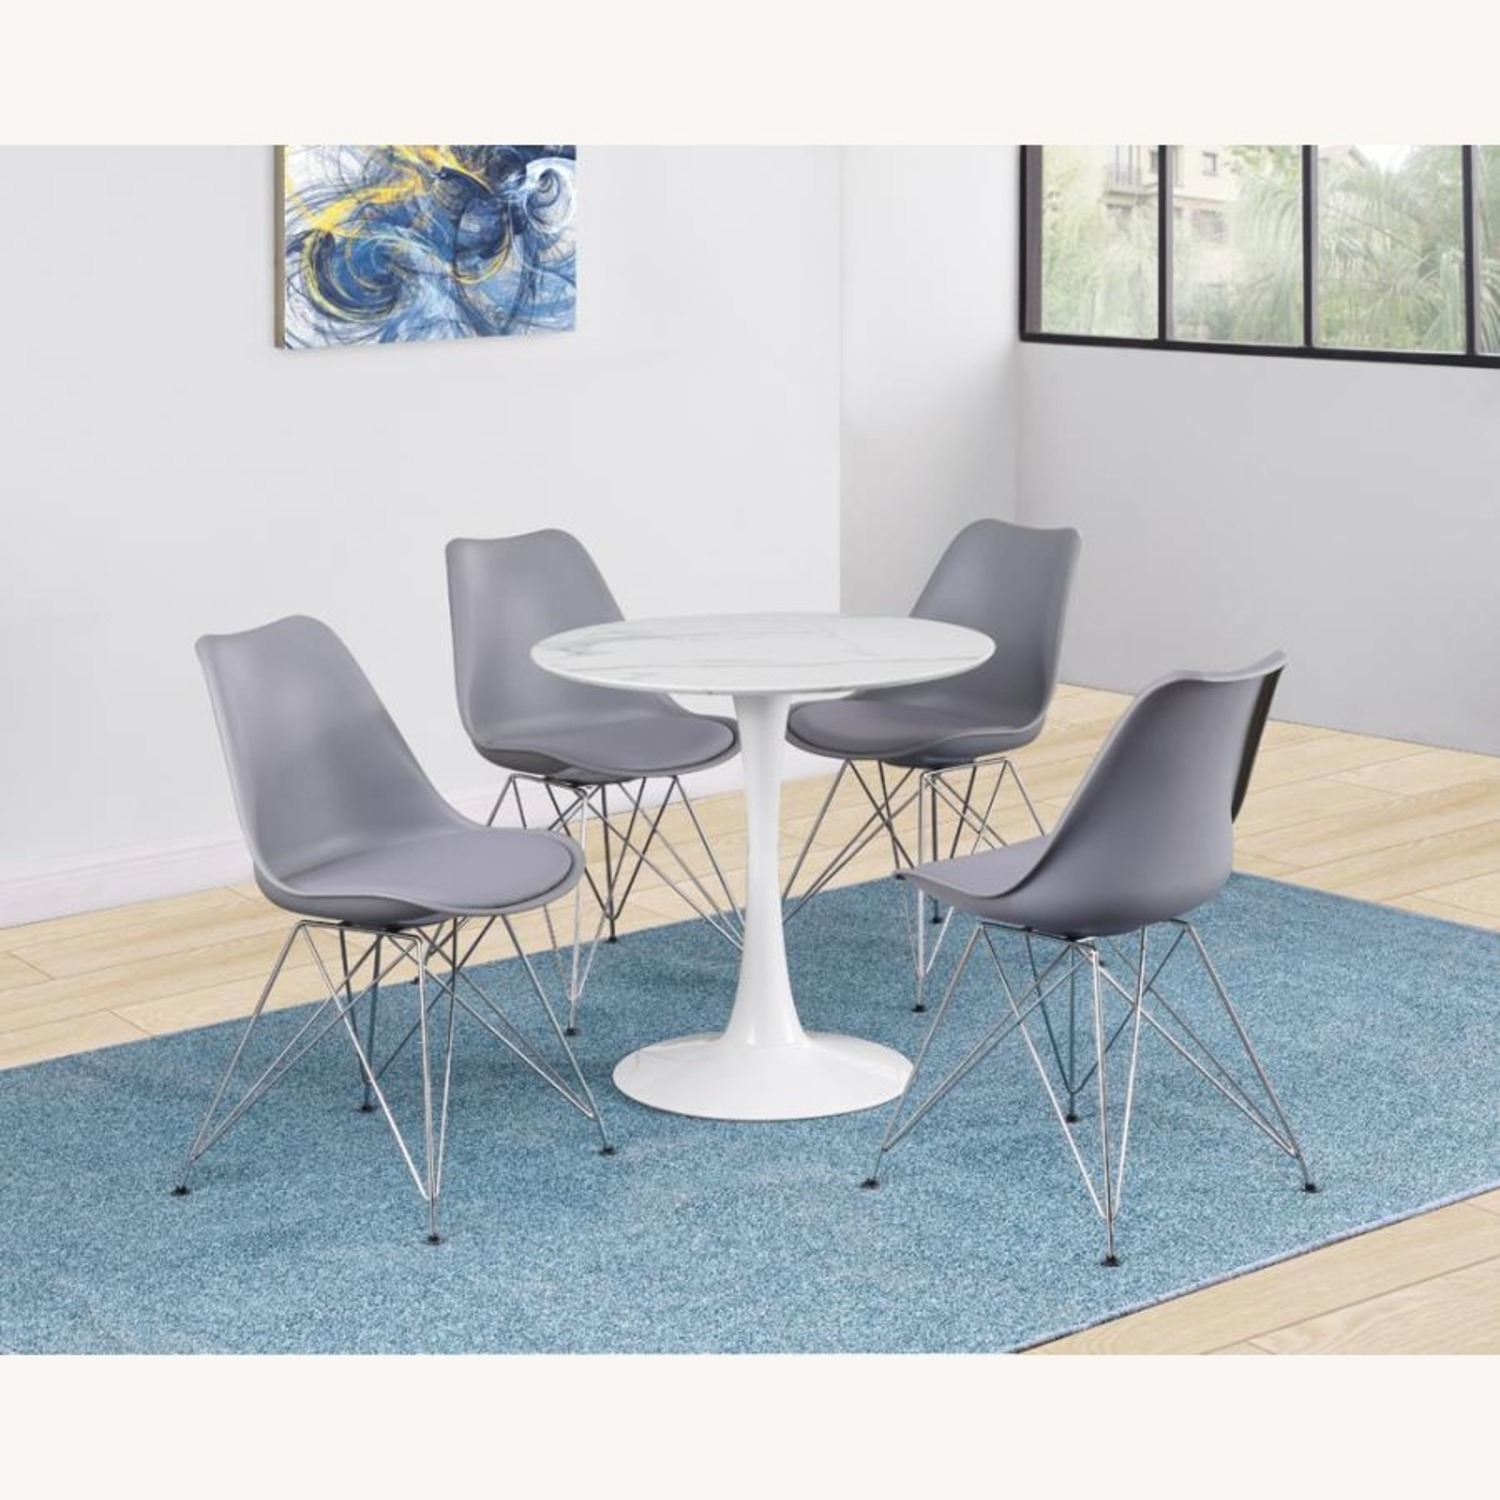 Round Dining Table In White Faux Marble Top - image-2